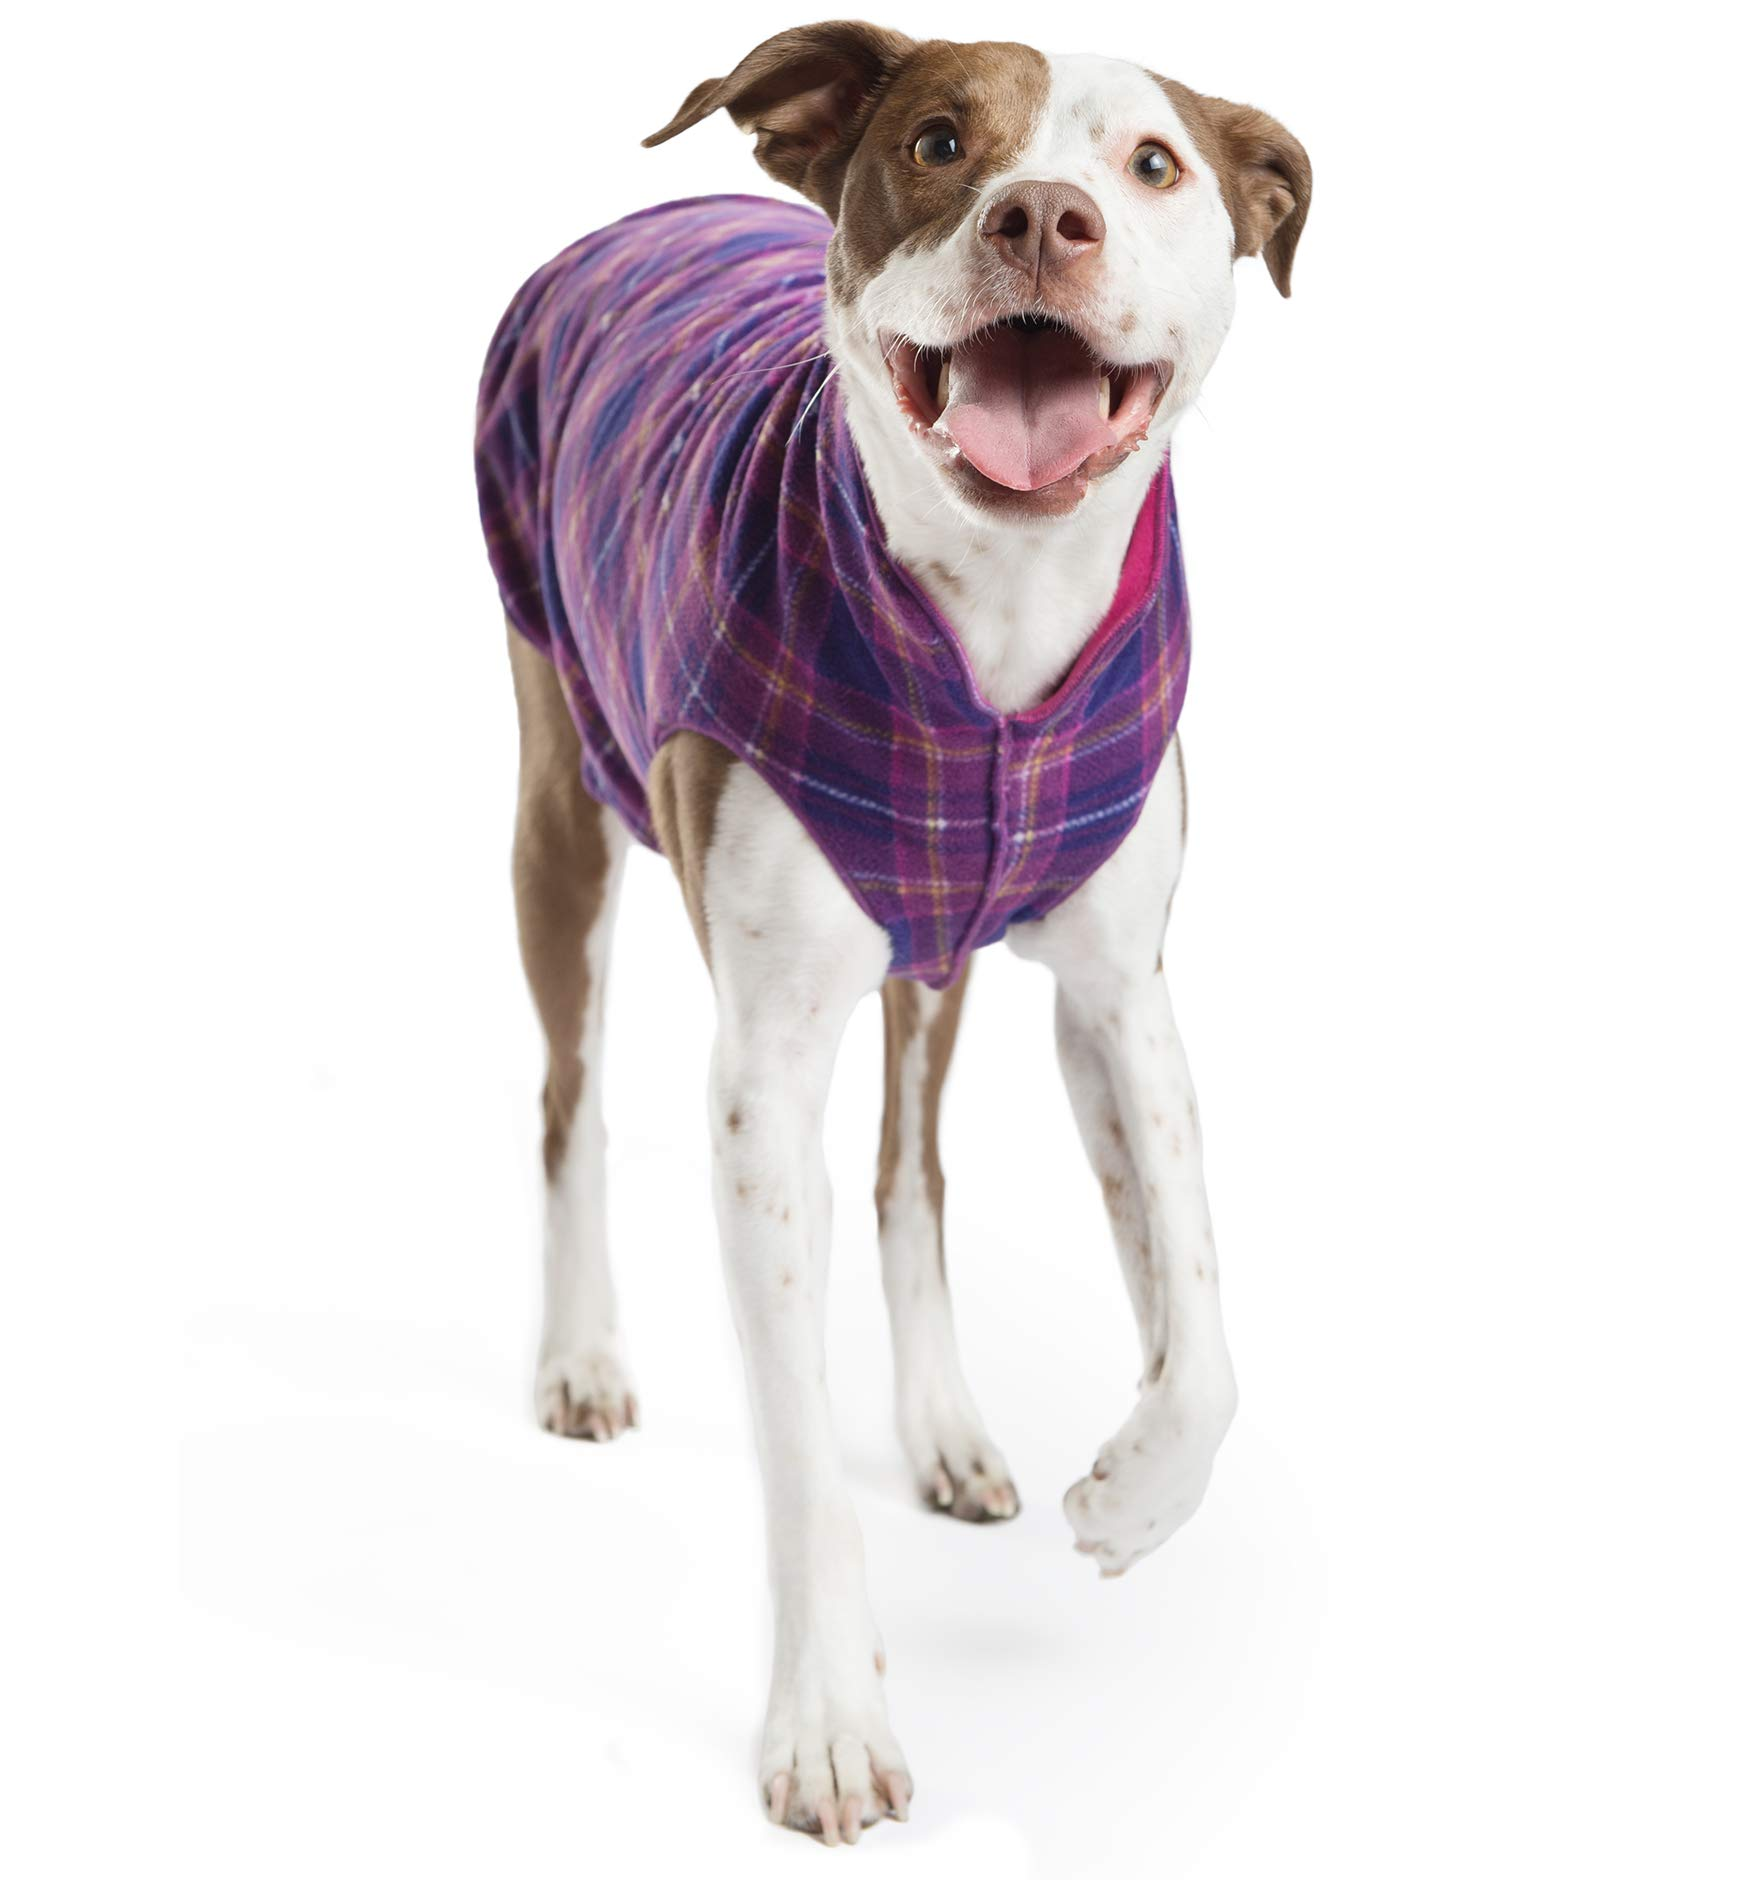 Gold Paw Duluth Double Fleece Dog Coat Pullover - Soft, Warm Dog Clothes, 4-Way Stretch Pet Sweater - Machine Washable, All-Season, Mulberry/Fuchsia, Size 12